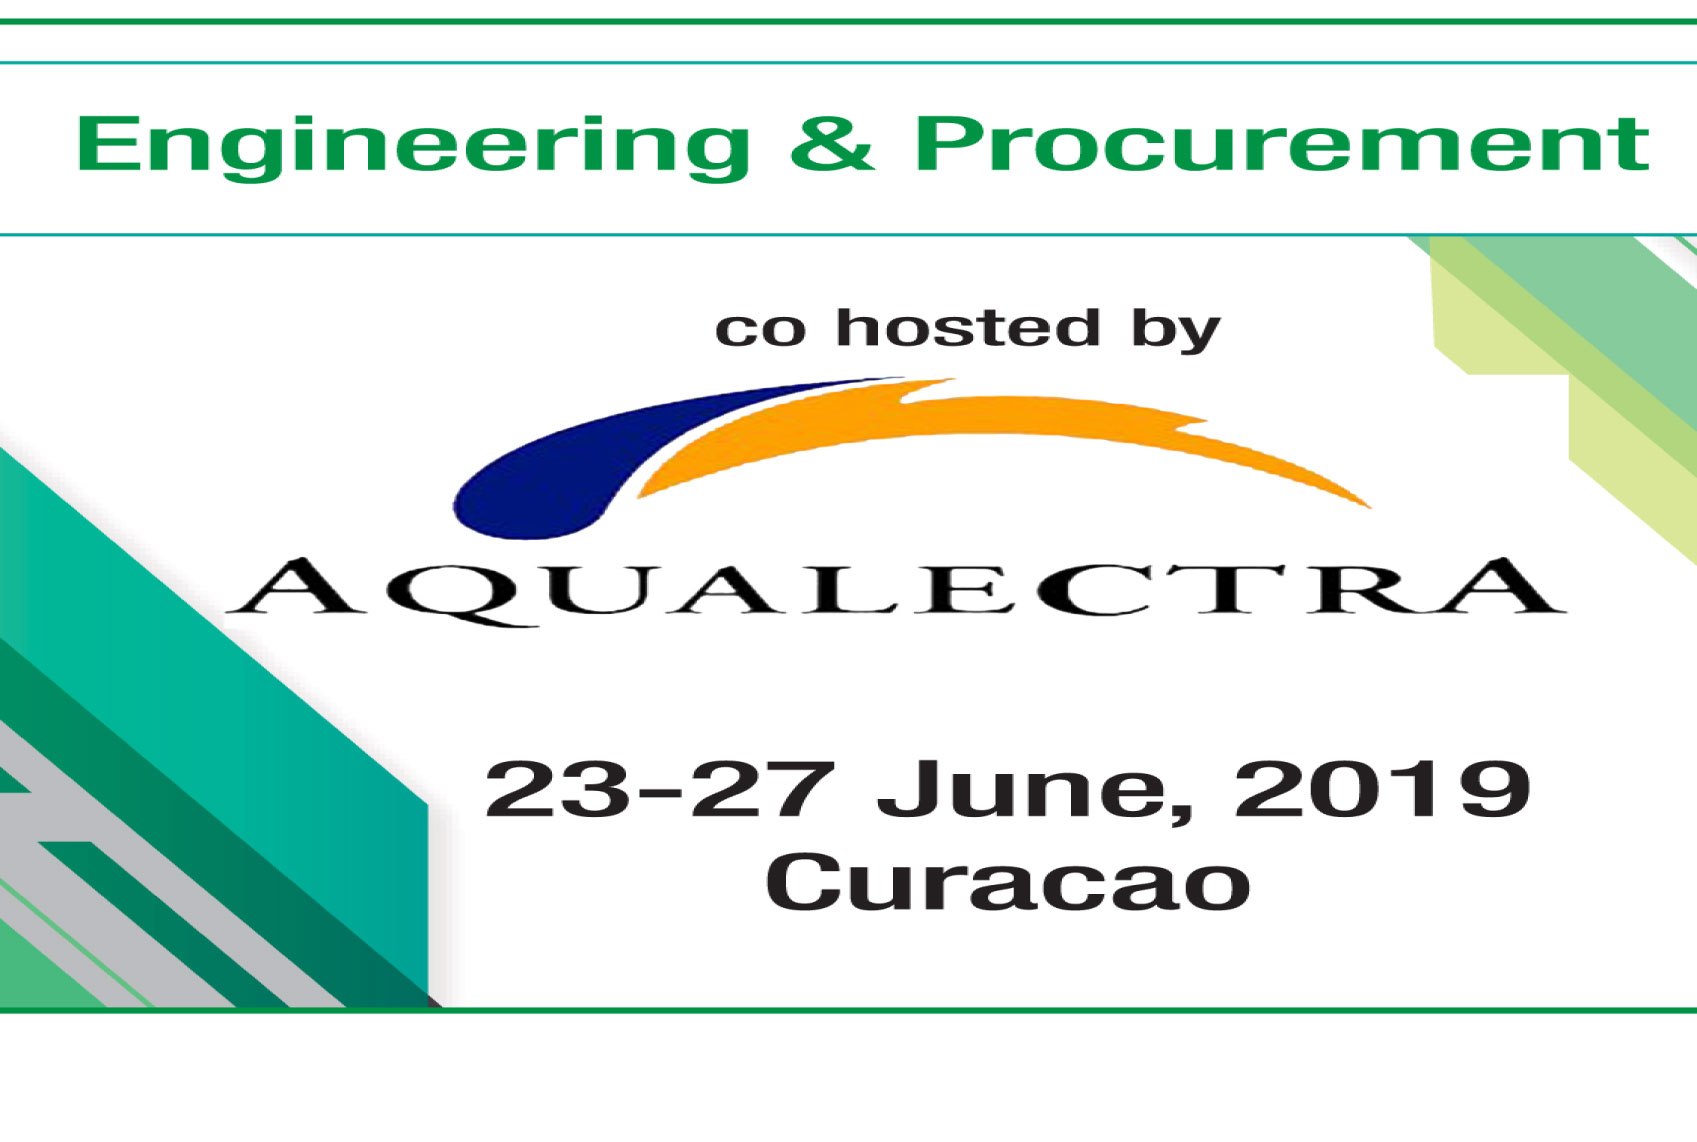 Engineering and Procurement Conference and Exhibition